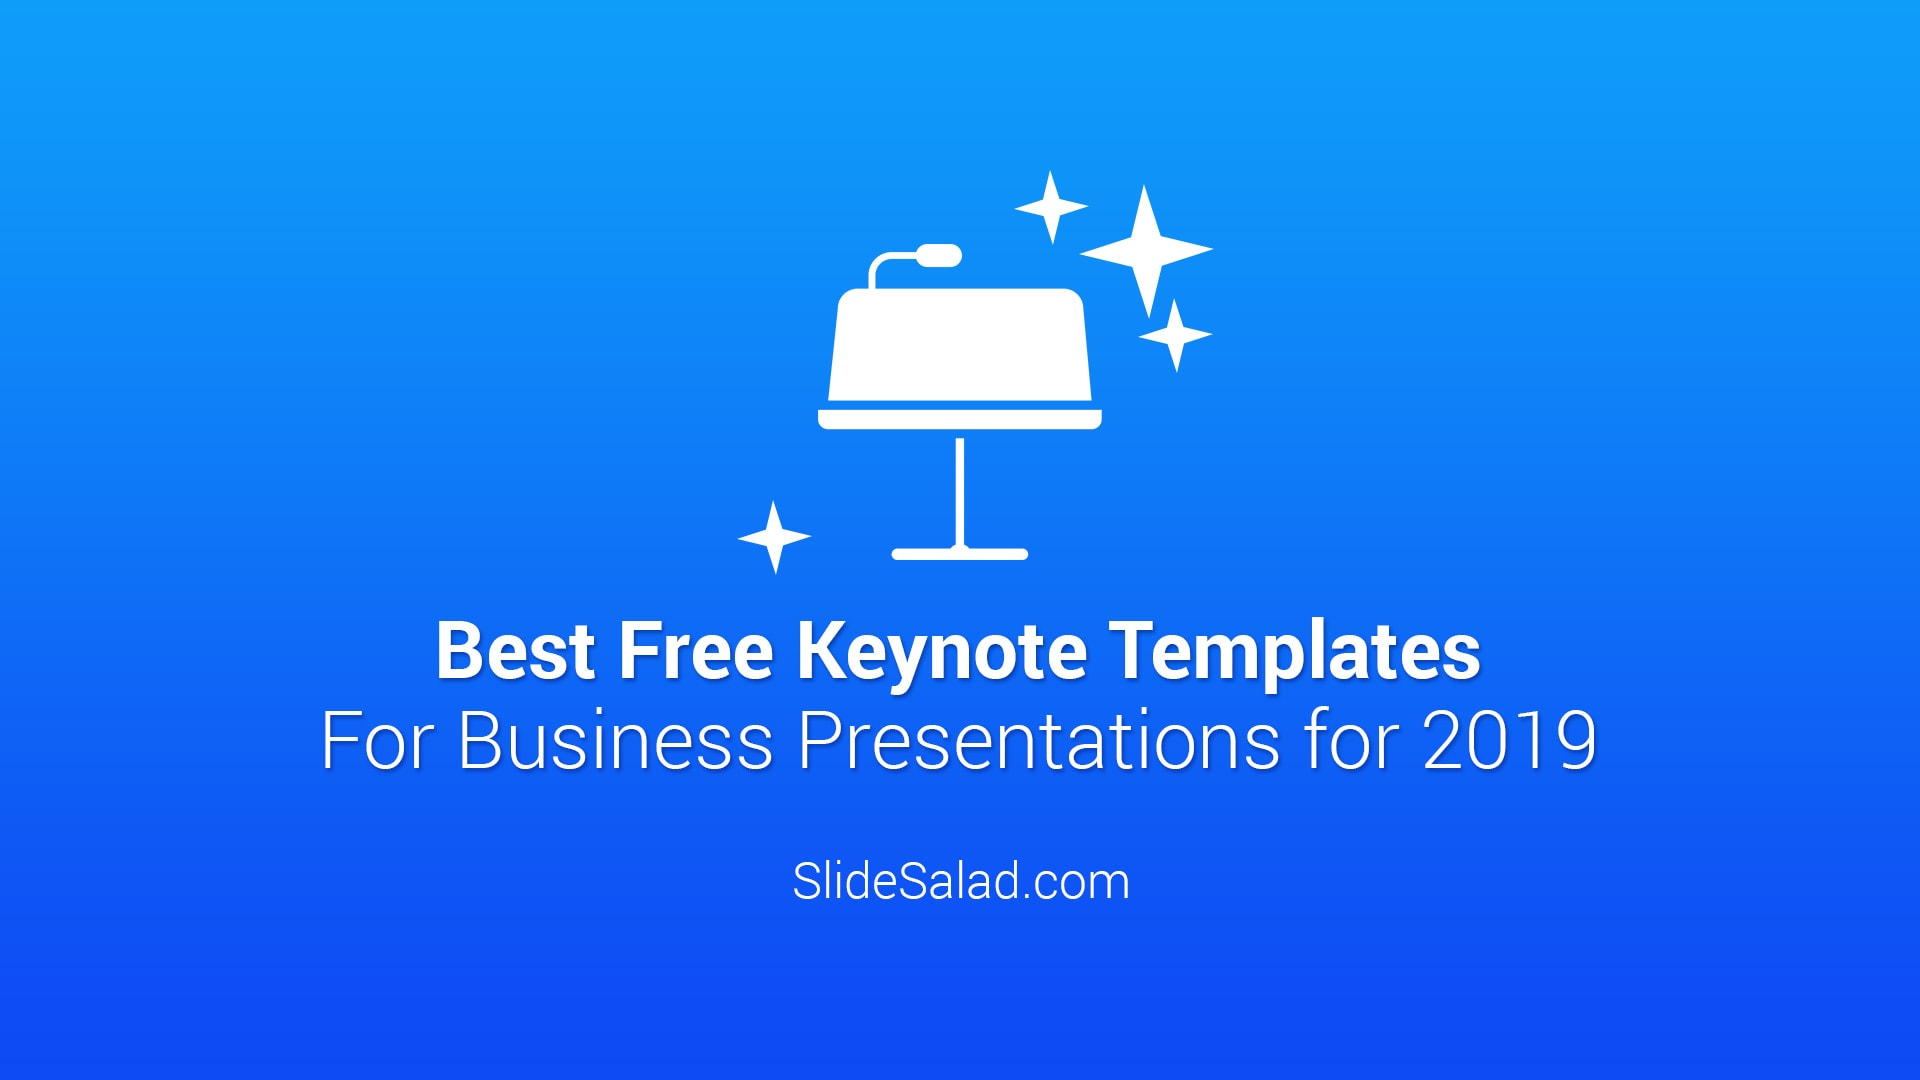 Best Free Keynote Templates for All Types of Presentations